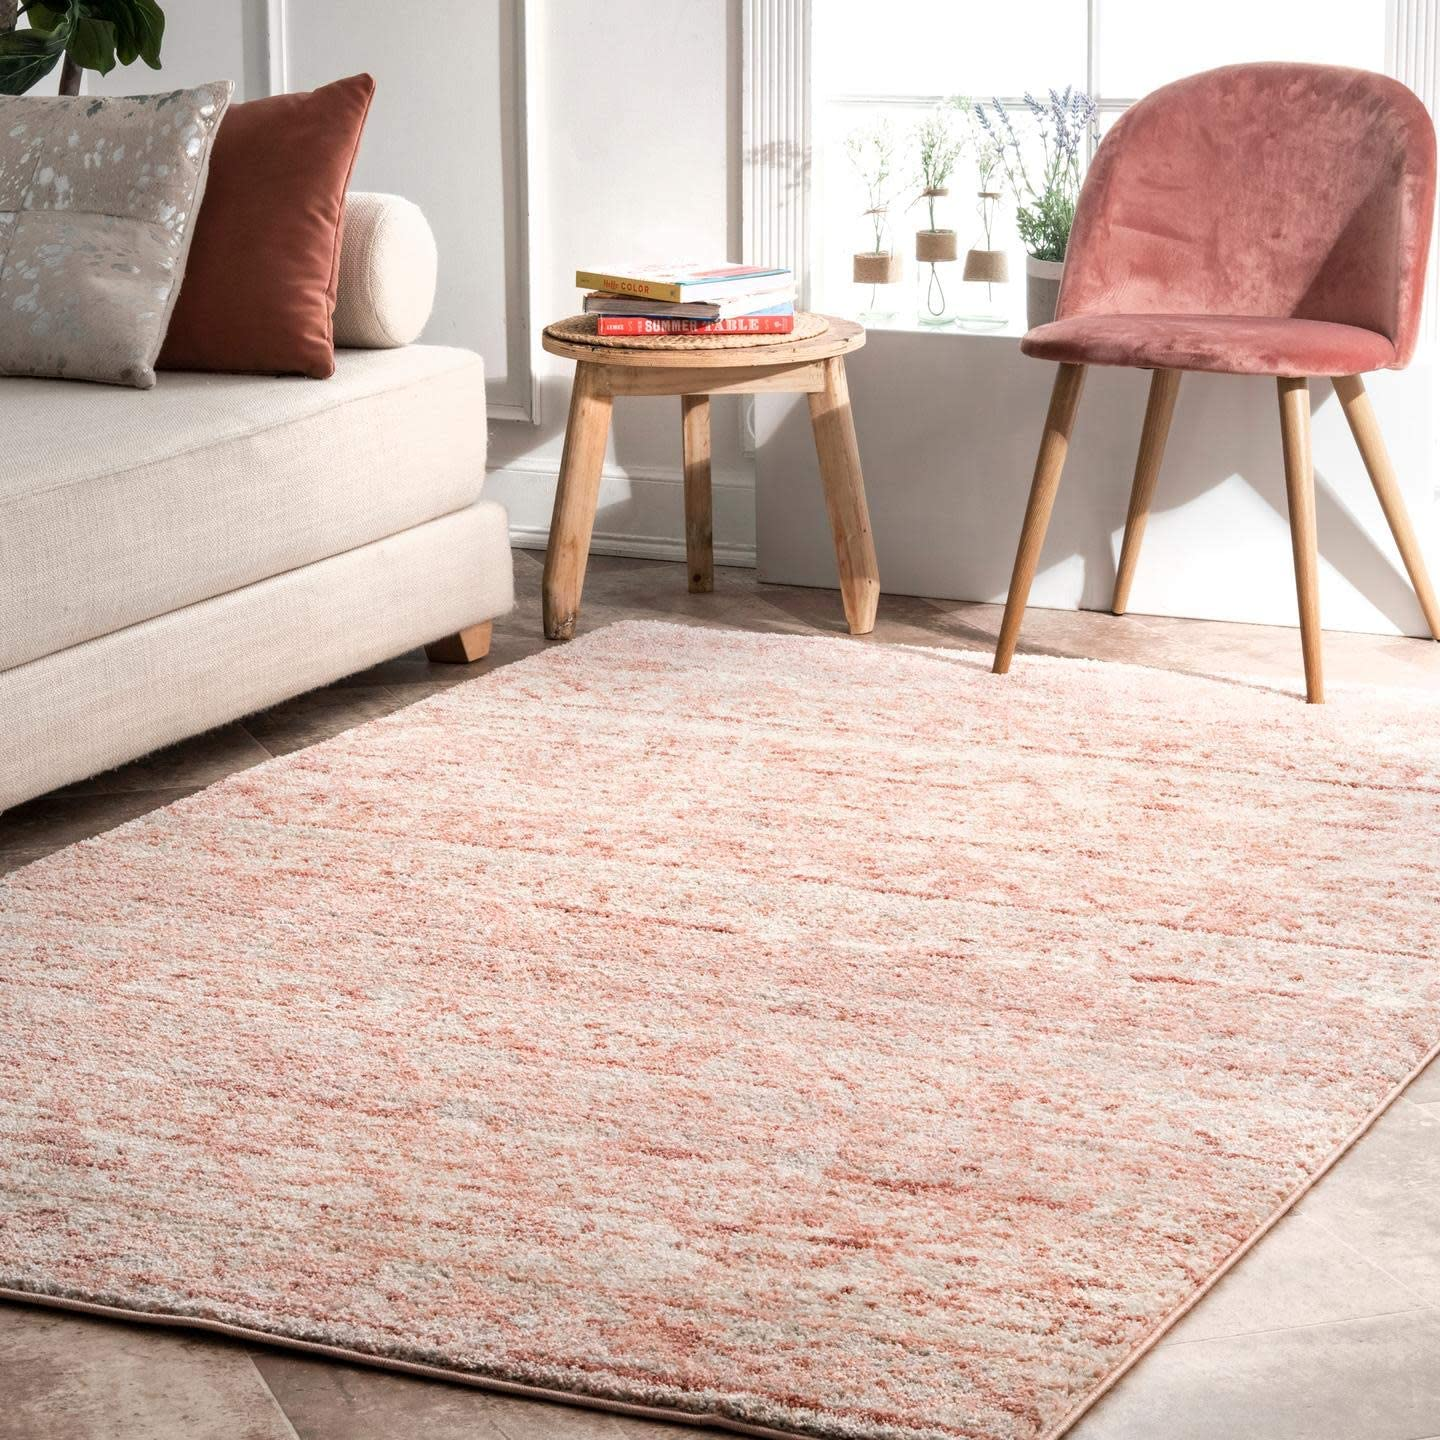 nuLOOM Transitional Moroccan Hattie Super popular specialty Bombing free shipping store Area Rug Square Pink 6'